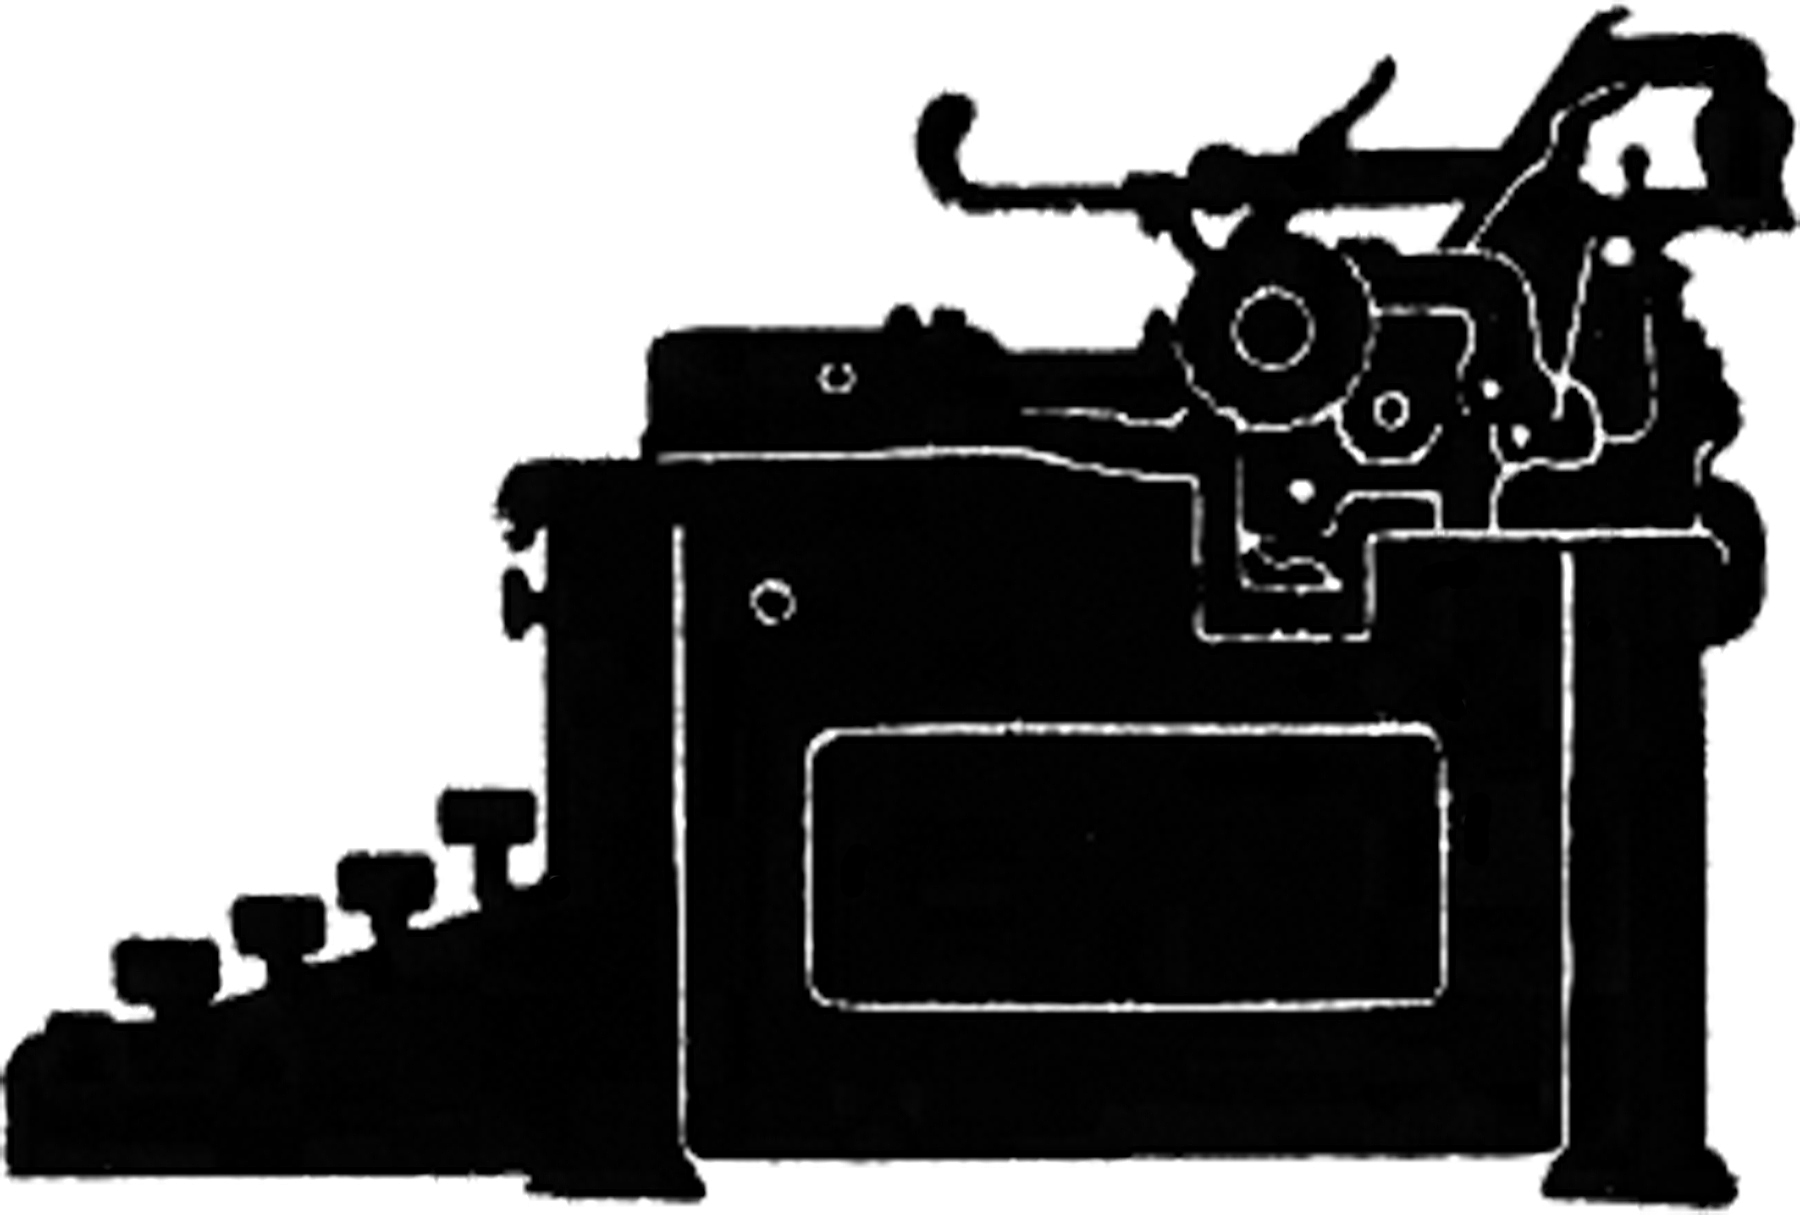 173x173 Vintage Movie Camera Silhouette Black Amp White Wallpaper 1800x1215 Typewriter Image